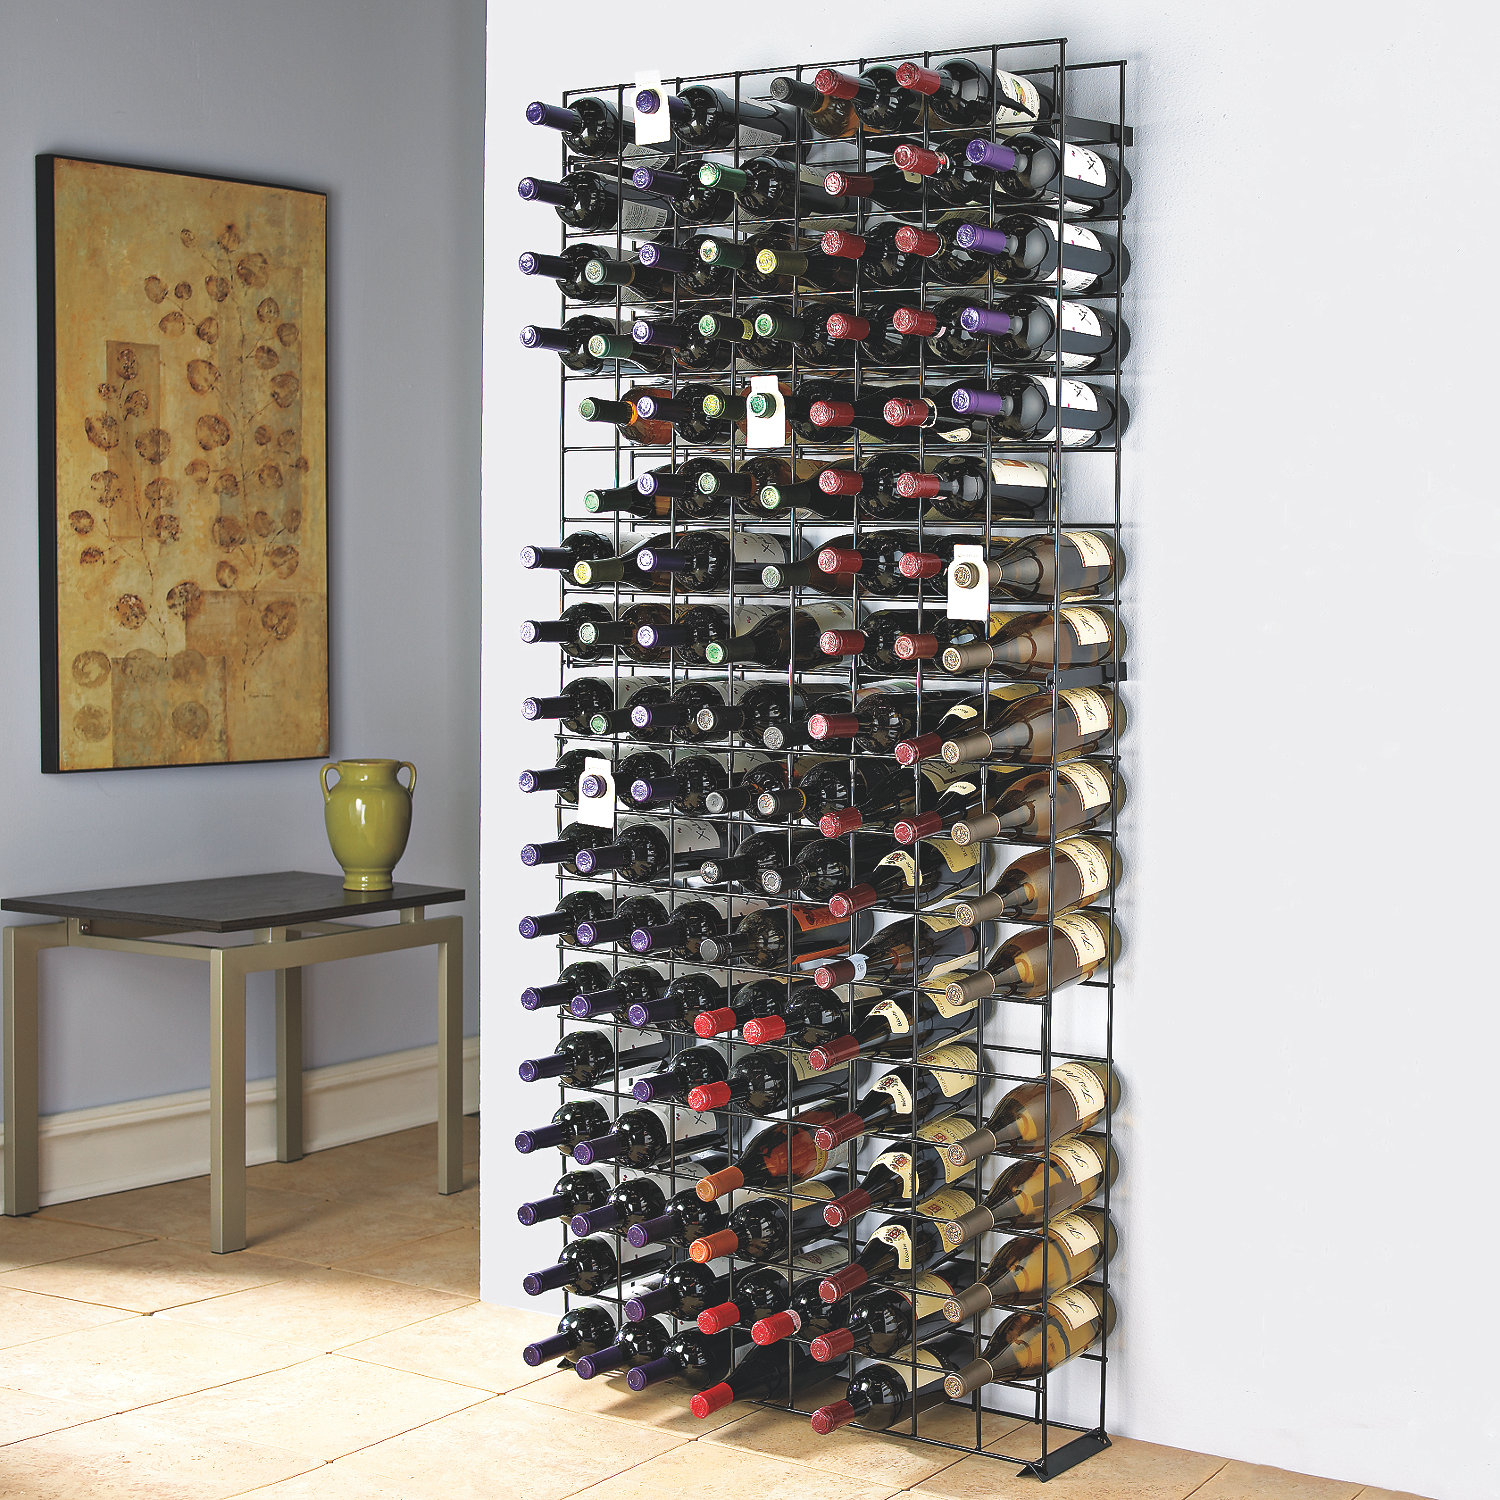 144 Bottle Black Tie Grid Wine Enthusiast